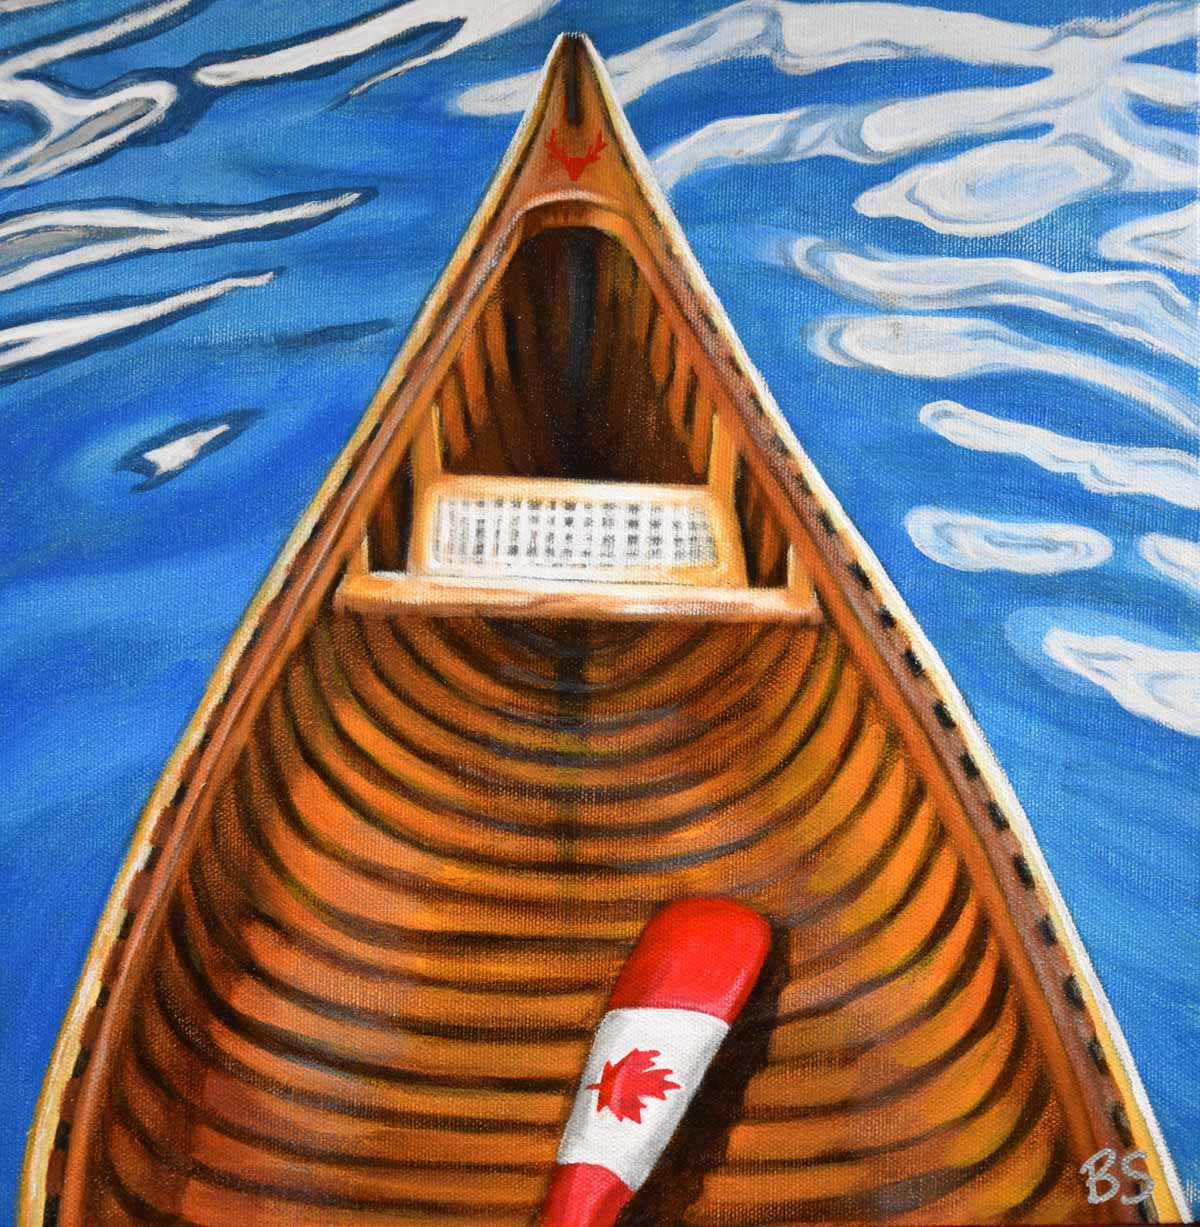 a canoe and a canada flag paddle